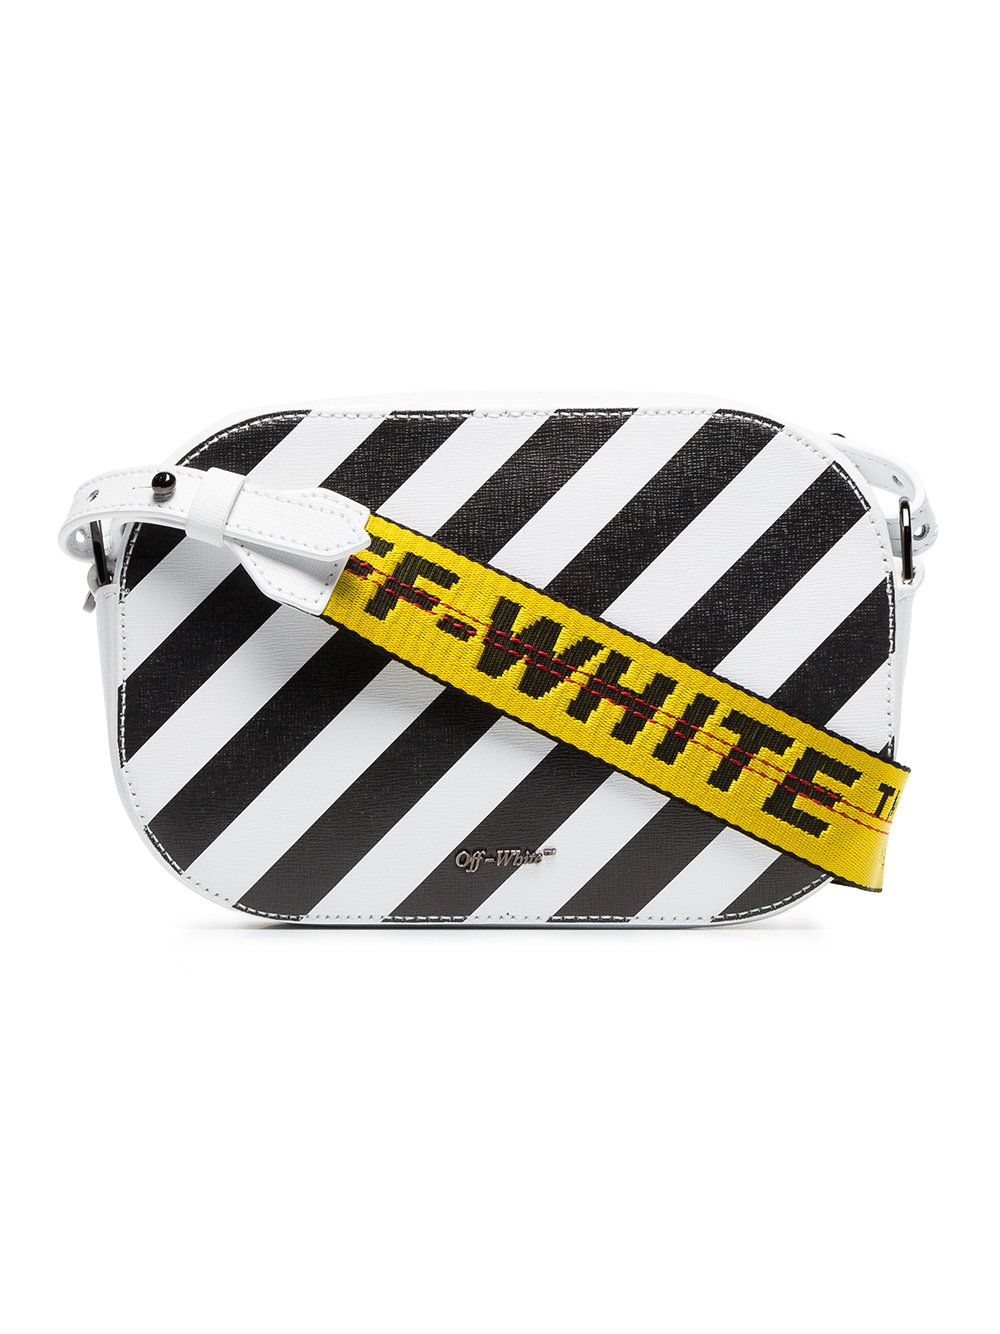 85a7d4a72 Off-White black and white diagonal stripe leather camera bag ...